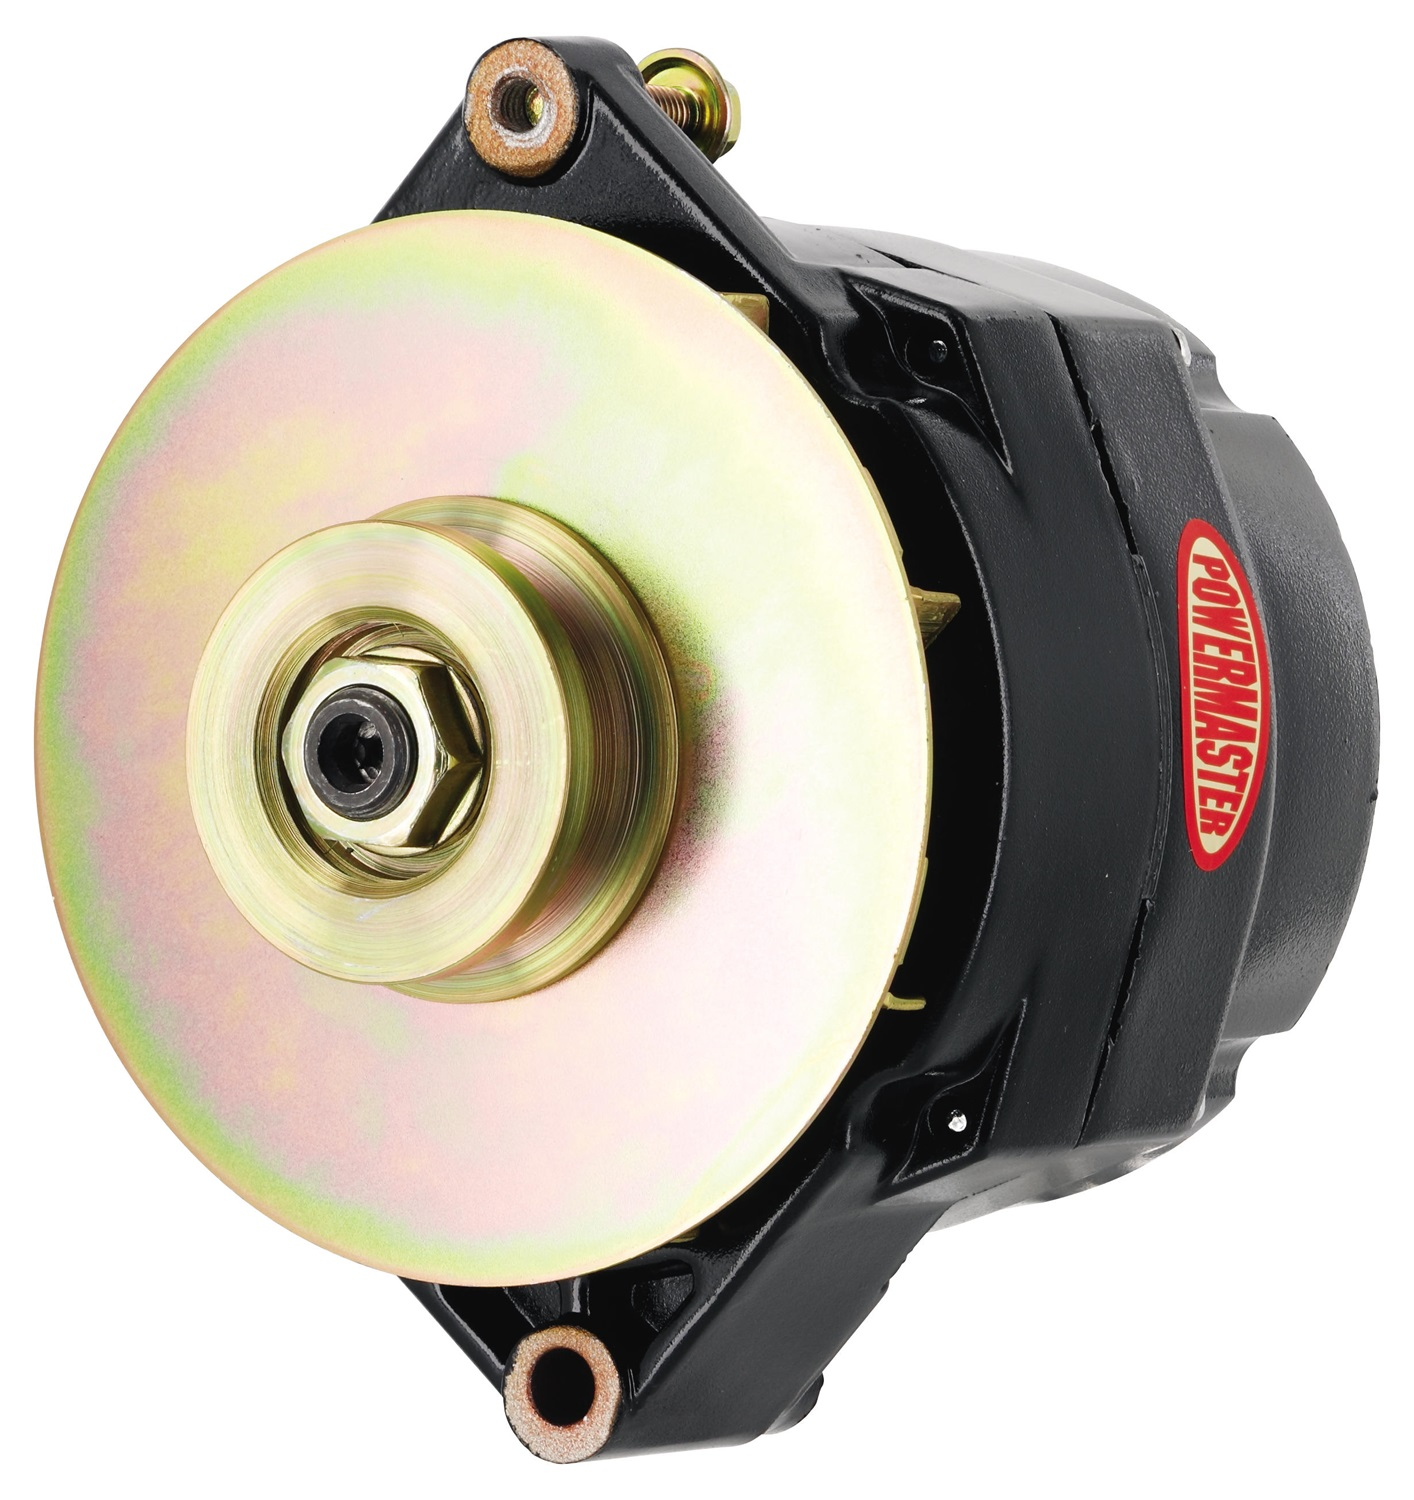 medium resolution of powermaster 57294 alternator generator gm 12si style single v belt pulley 150 amp 1 or 3 wire black walmart canada